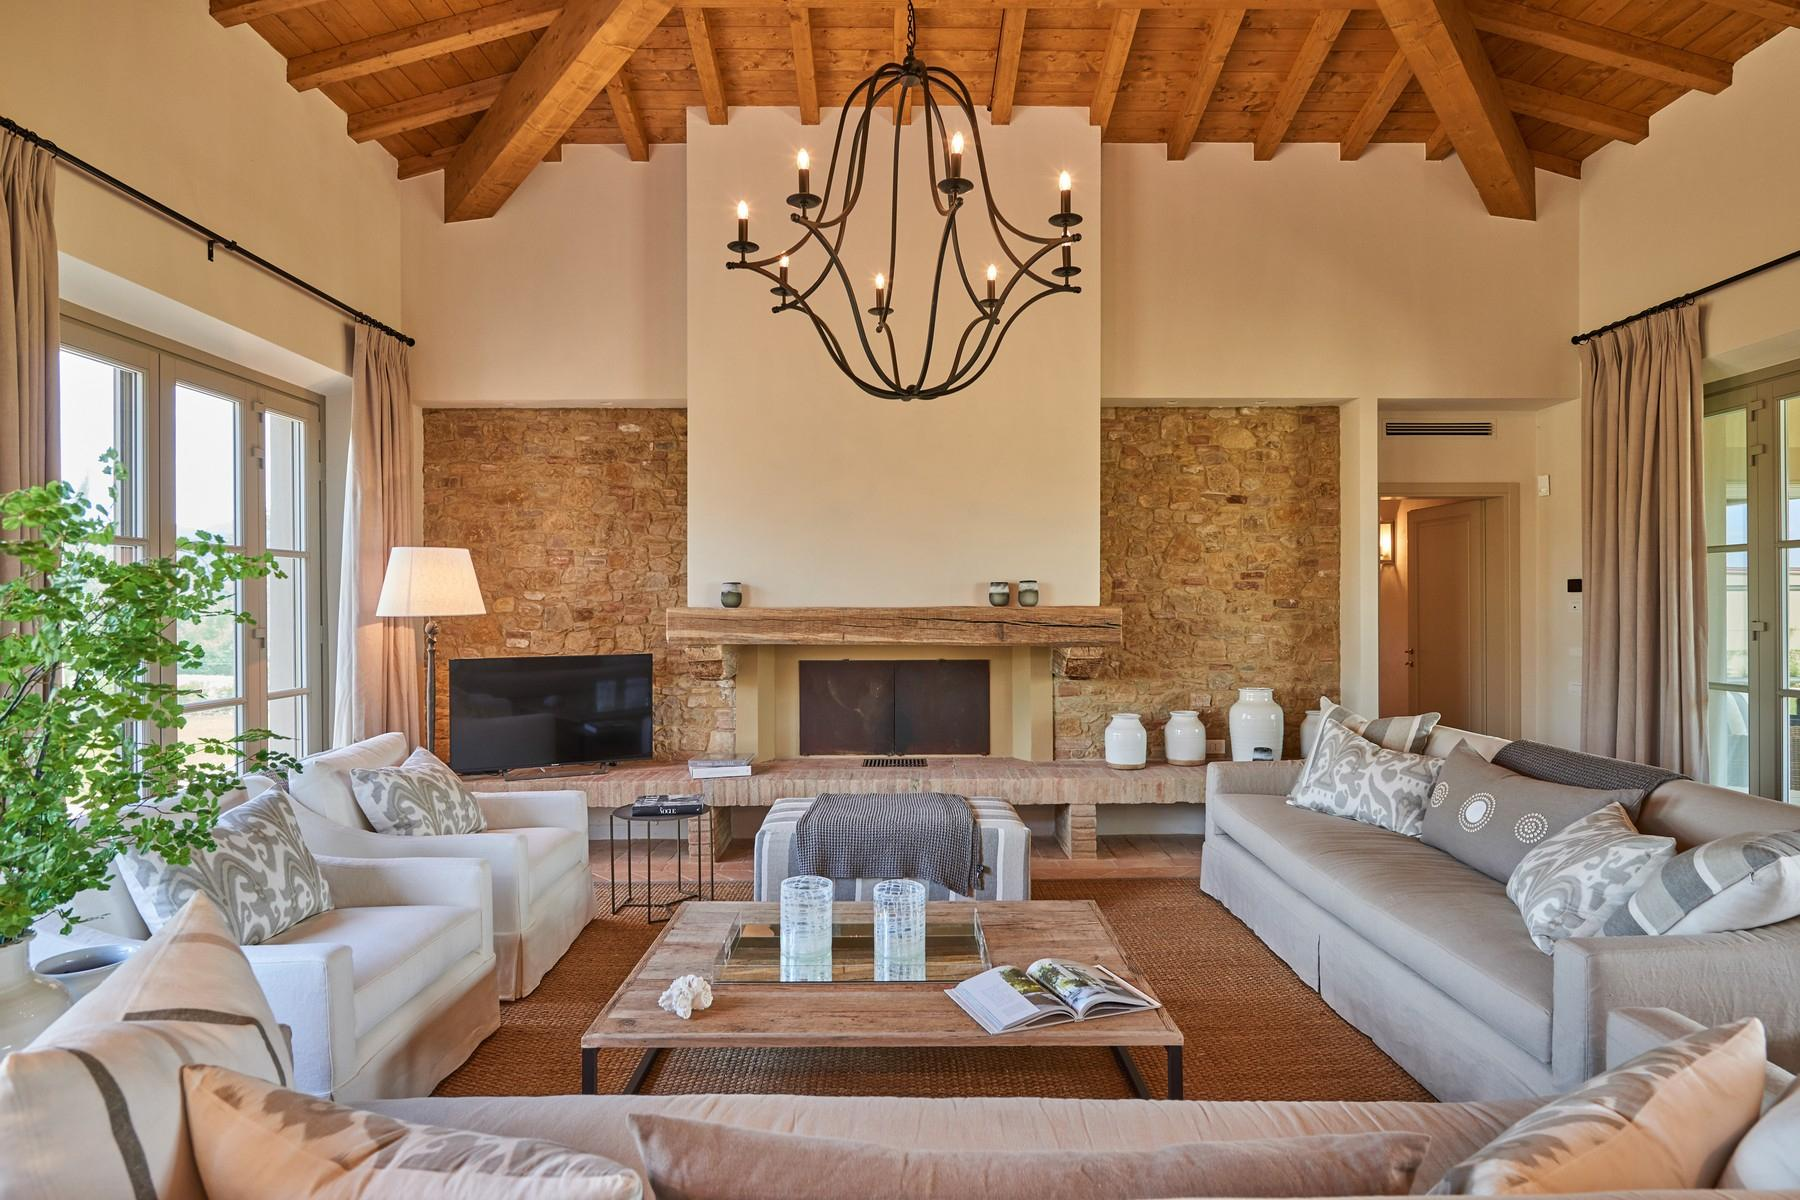 Marvellous new build villas in the Tuscan countryside - 6